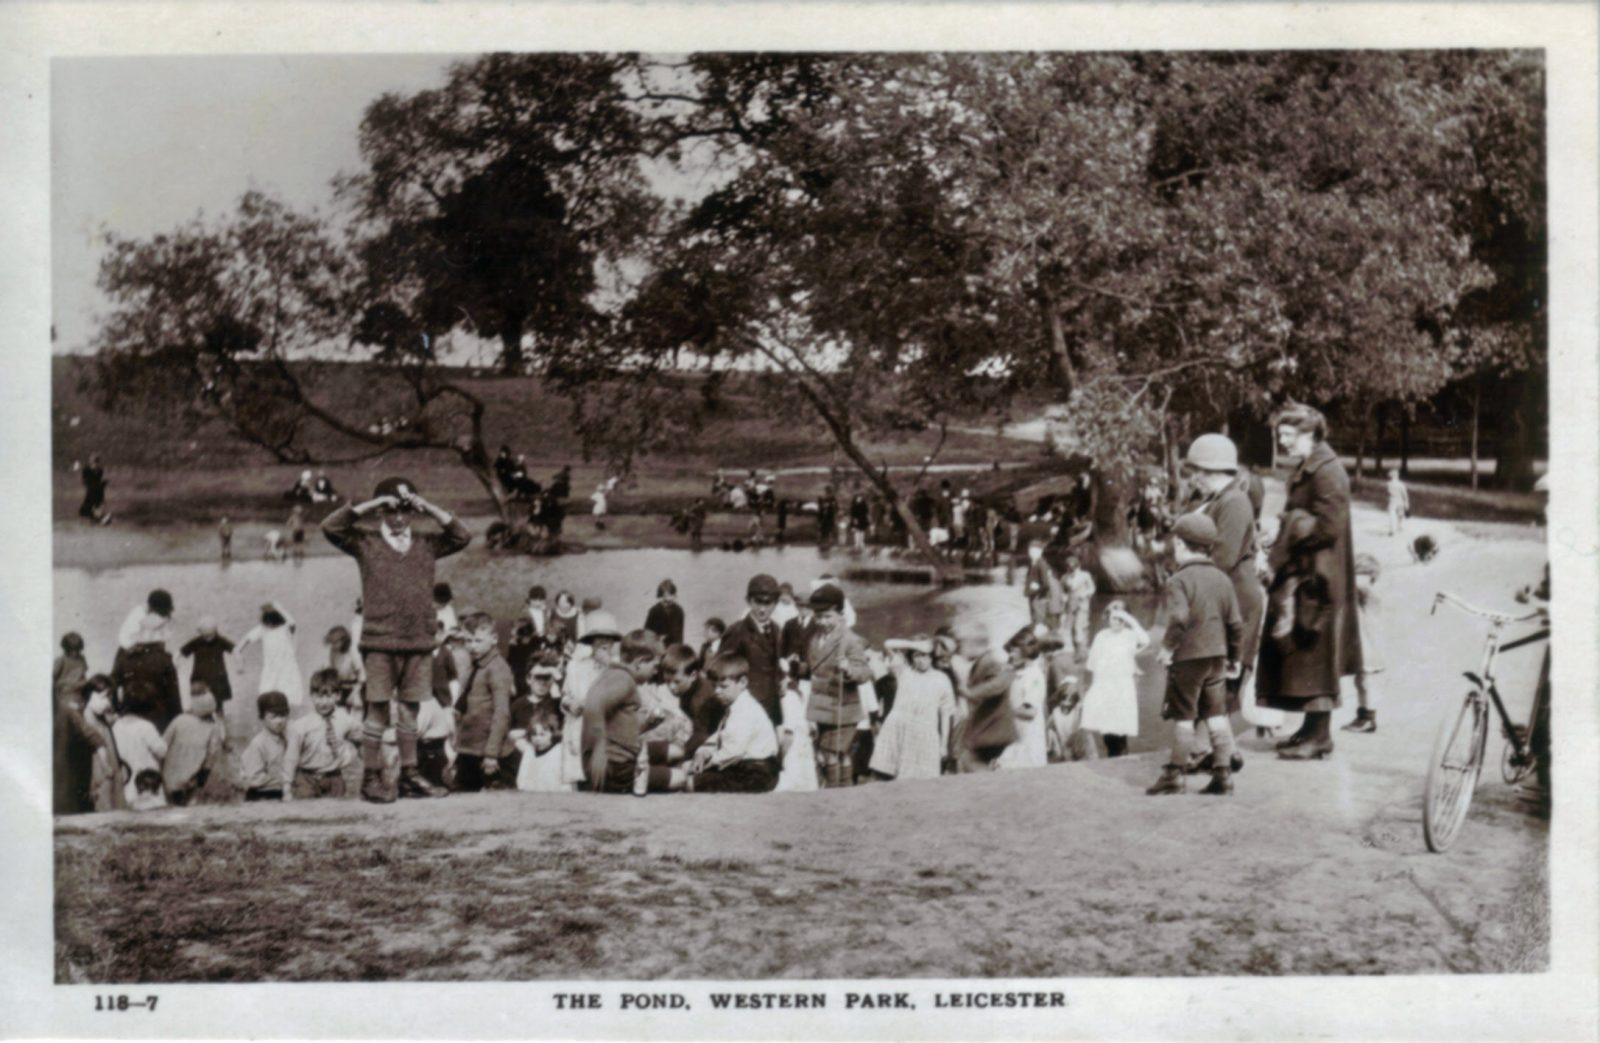 Western Park, Leicester. 1941-1960: The pond with many children playing (File:1426)